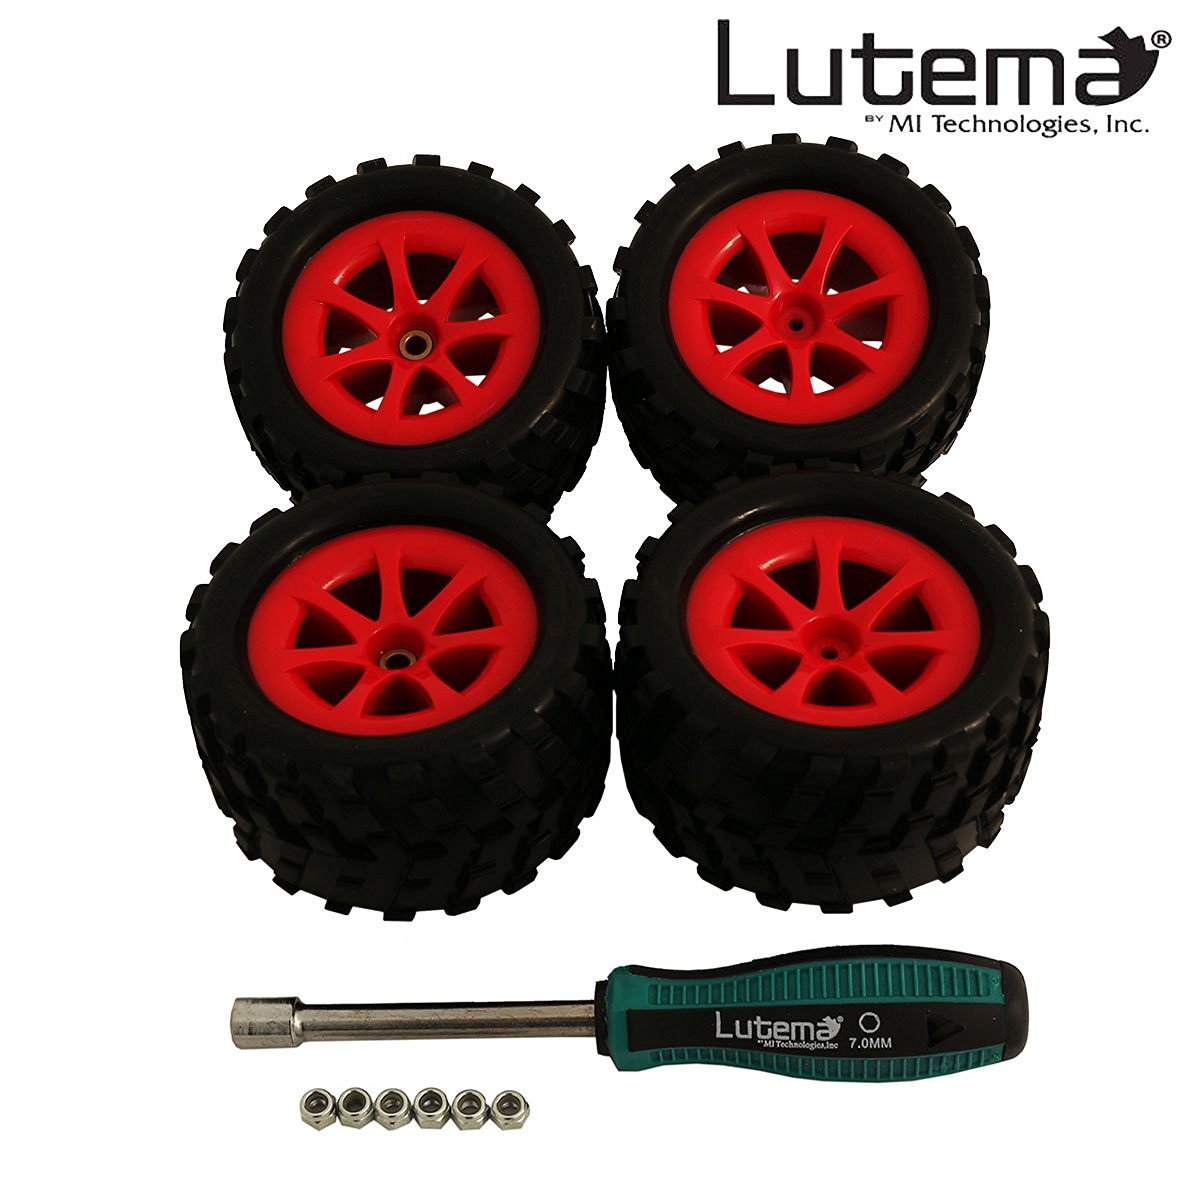 Lutema Hyp-R-Baja 2.4Ghz Big Bruiser Complete Set of Color Wheels With Tires - Red